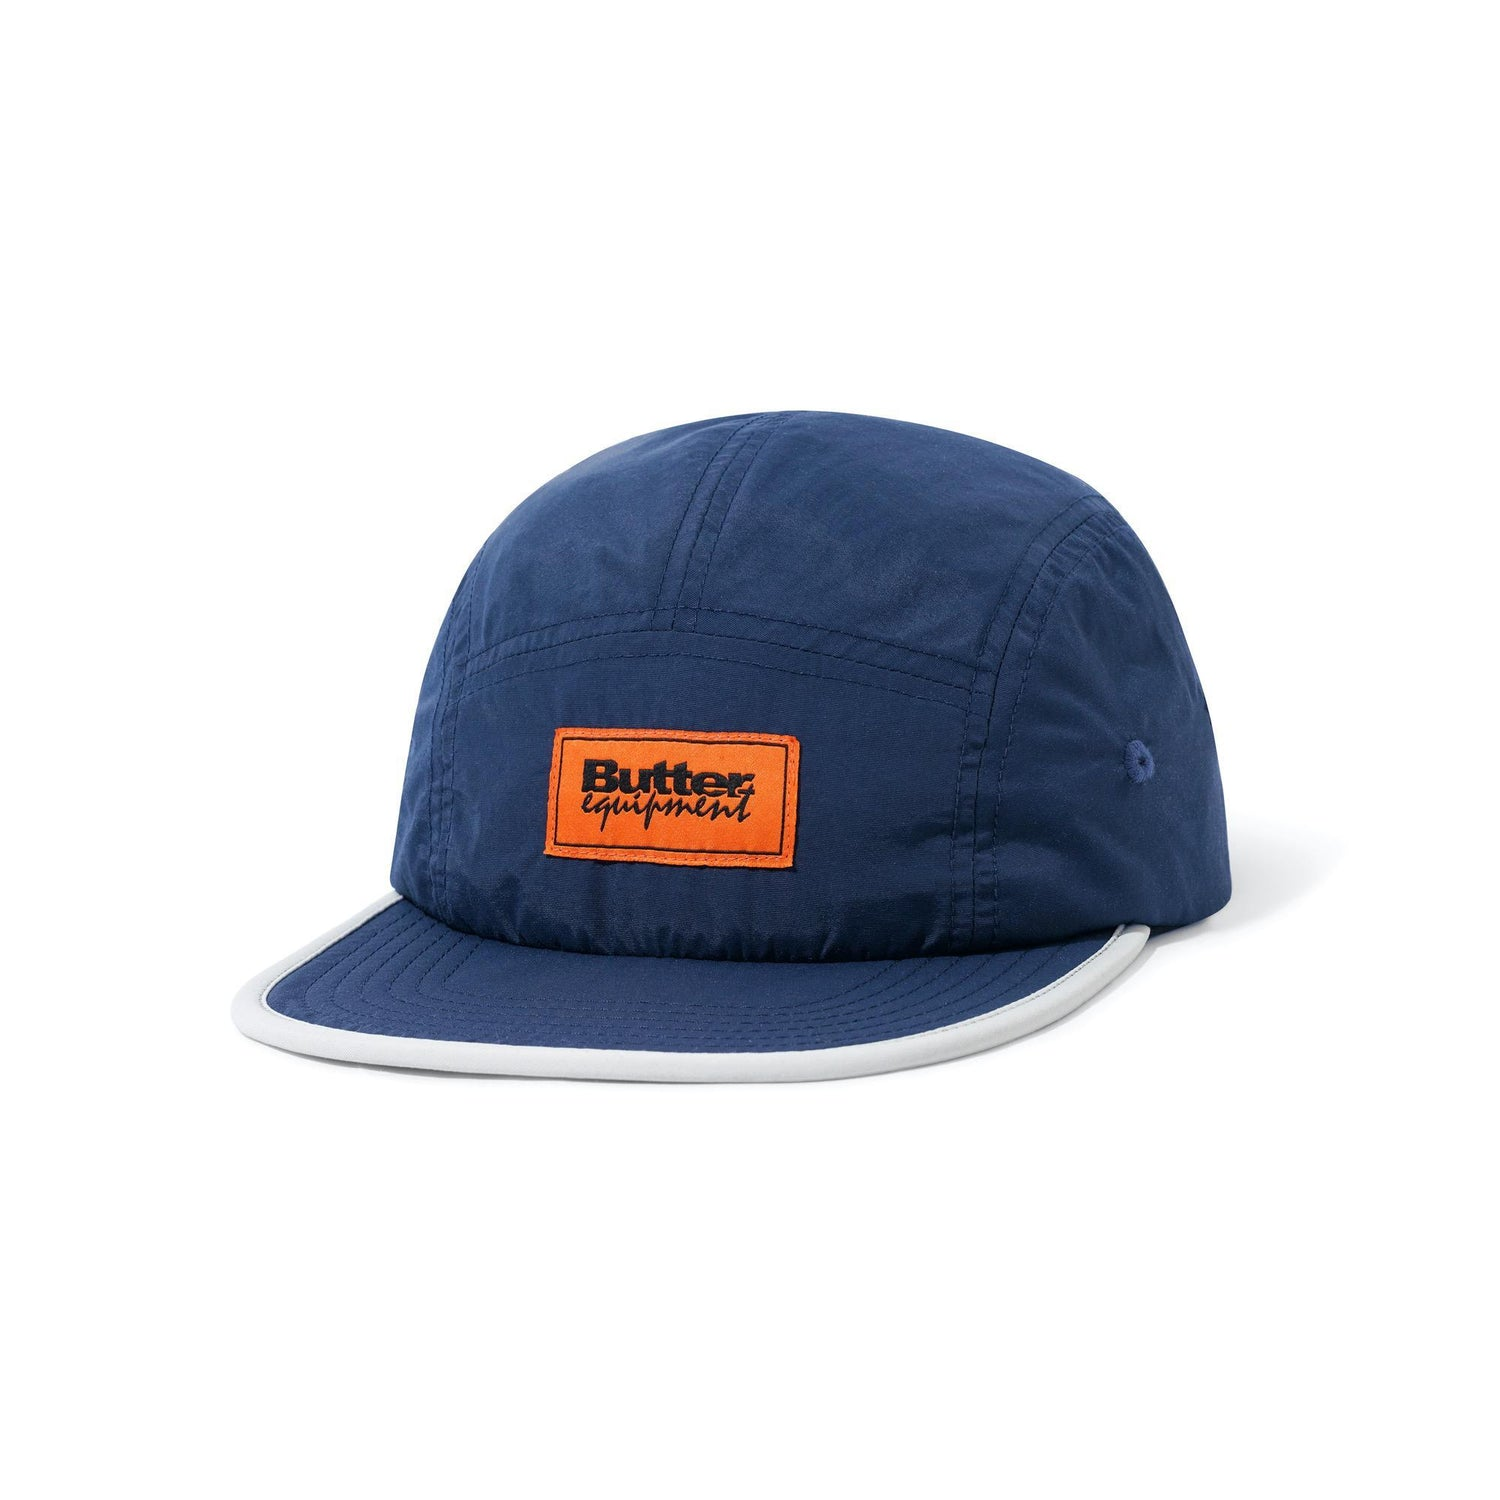 Equipment 5 Panel, Navy